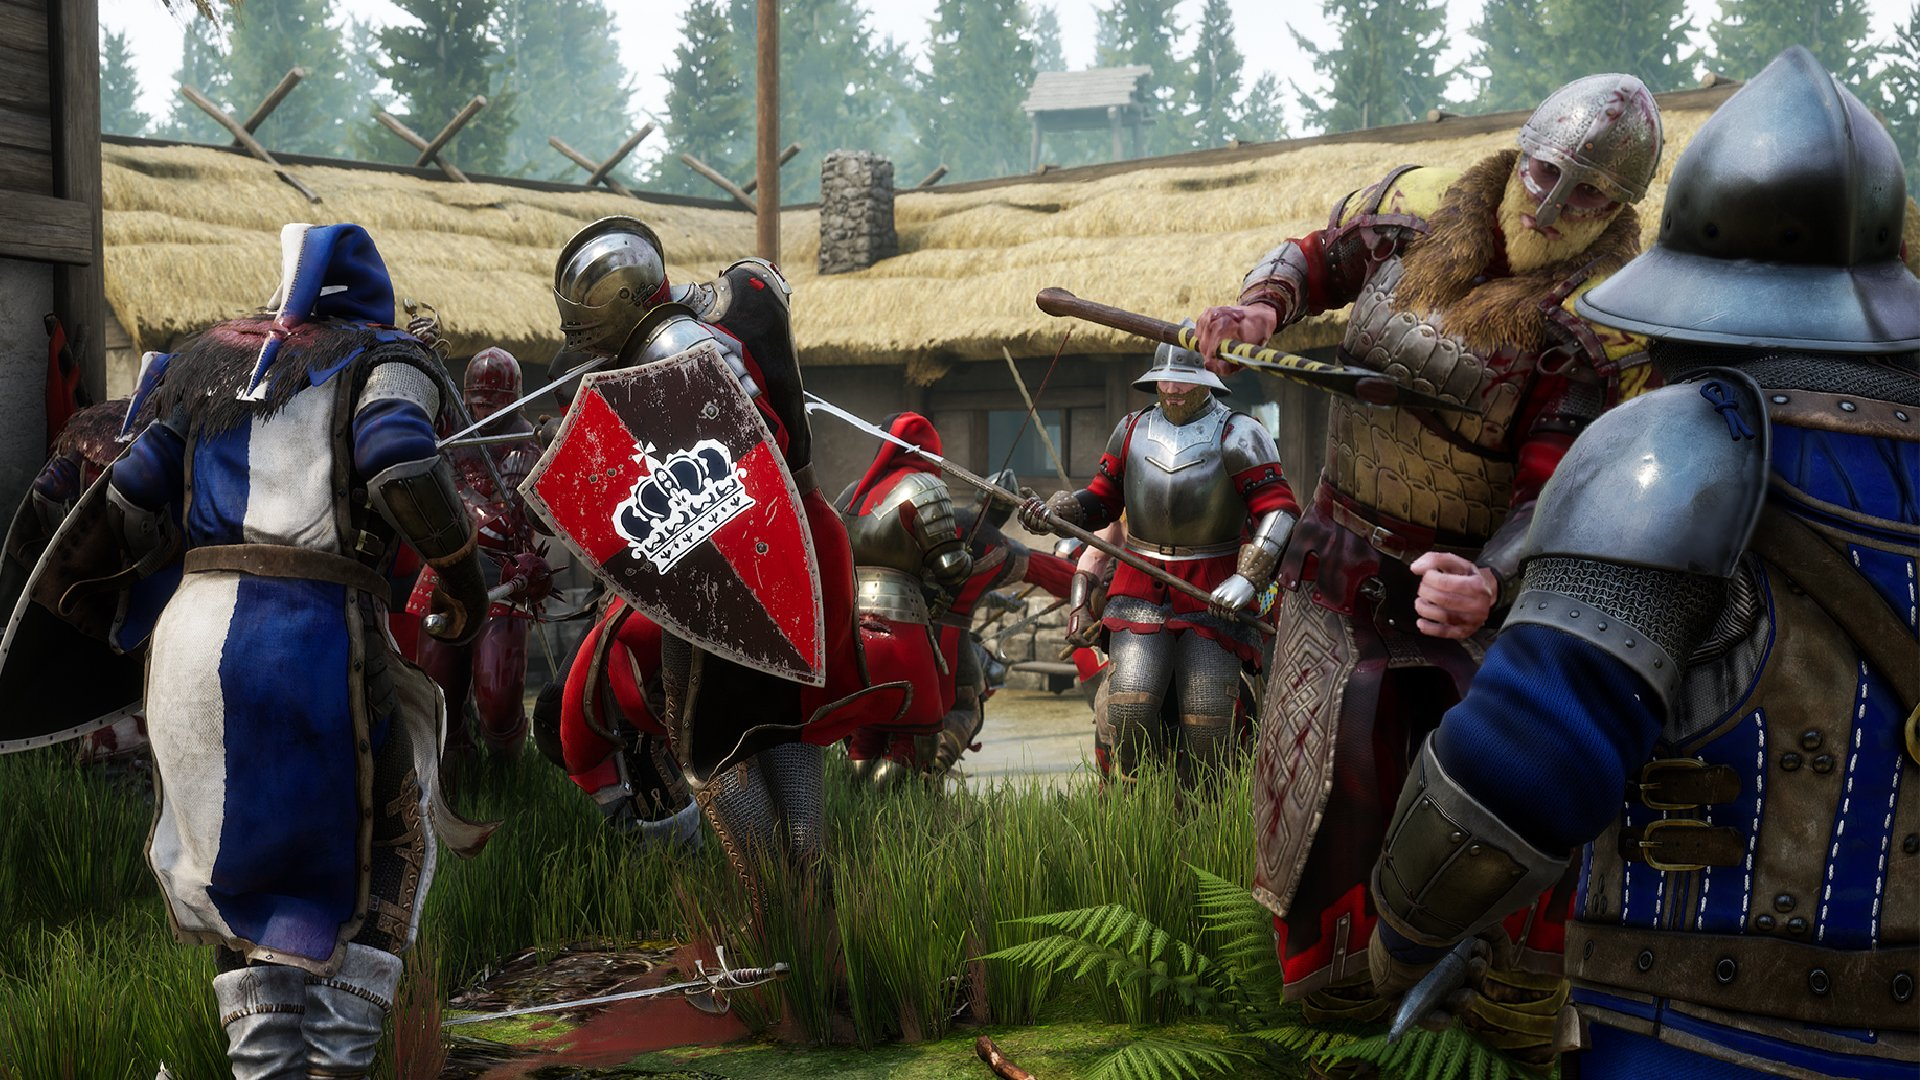 There are a wide variety of game mode types available in Mordhau from Frontline to Team Deathmatch.